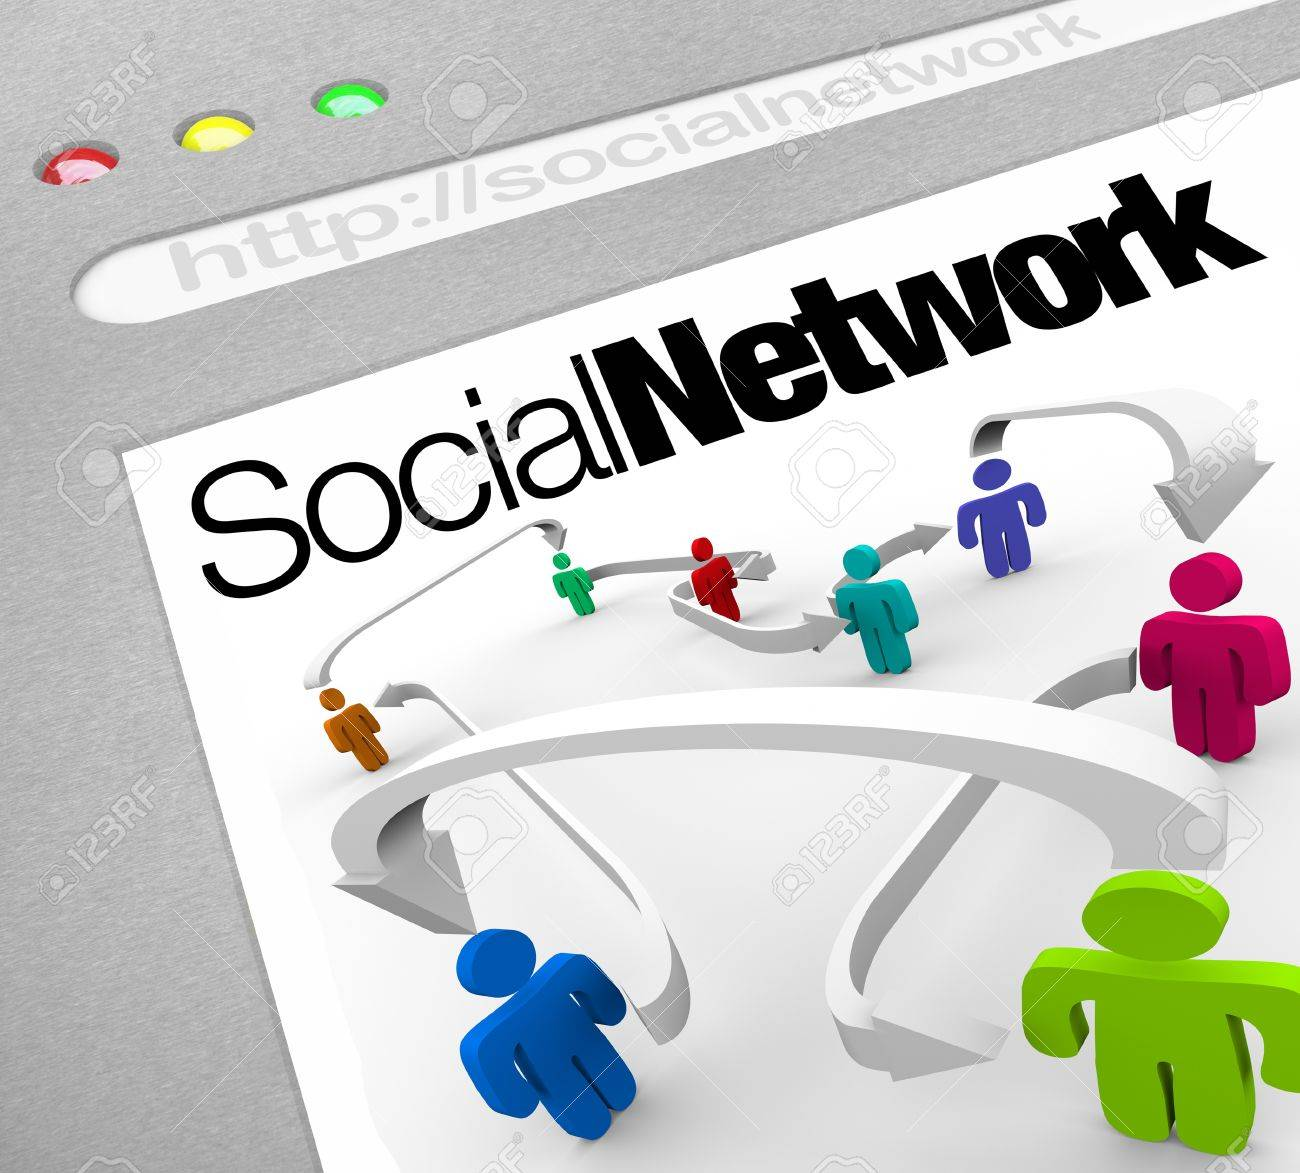 A web browser window shows a social network of people connected by arrows represented on a web screen illustrating a networking site on the internet Stock Photo - 10913361